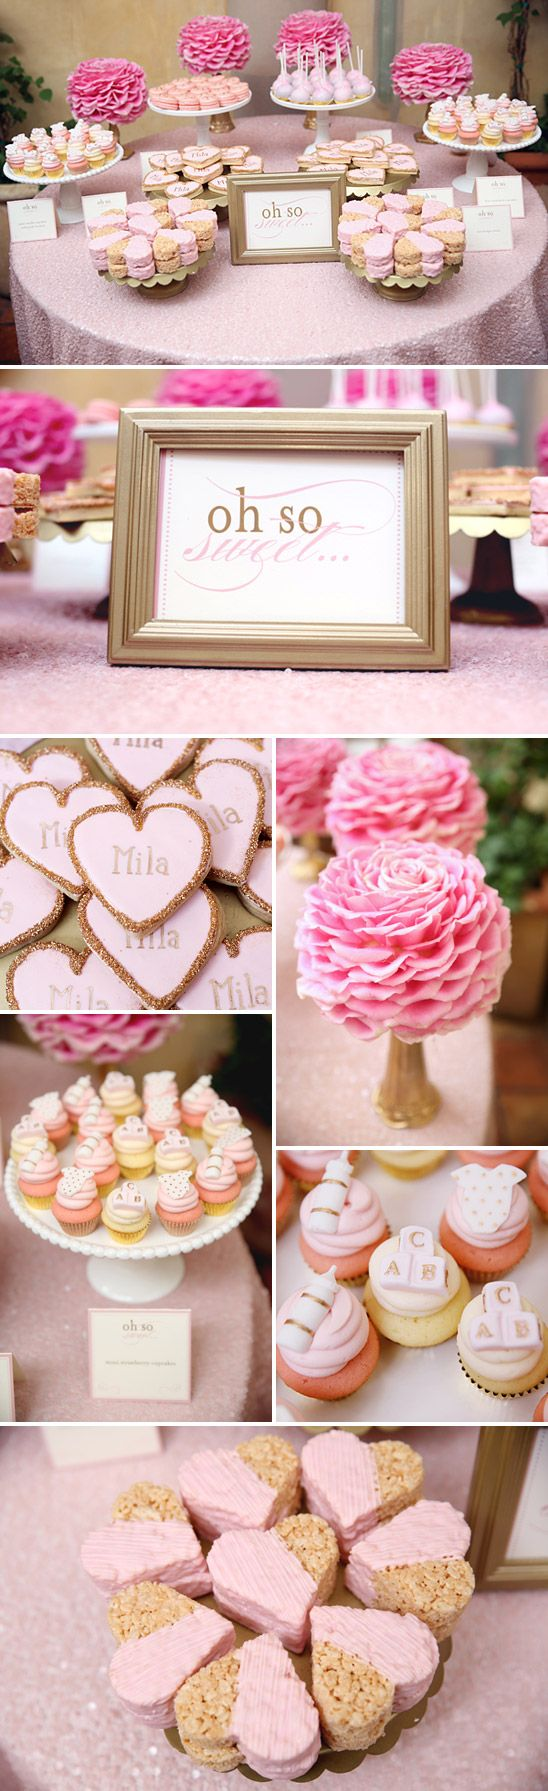 A feminine elegant baby shower in pink and gold bautizo alessia inspiration pinterest - Pink baby shower table decorations ...